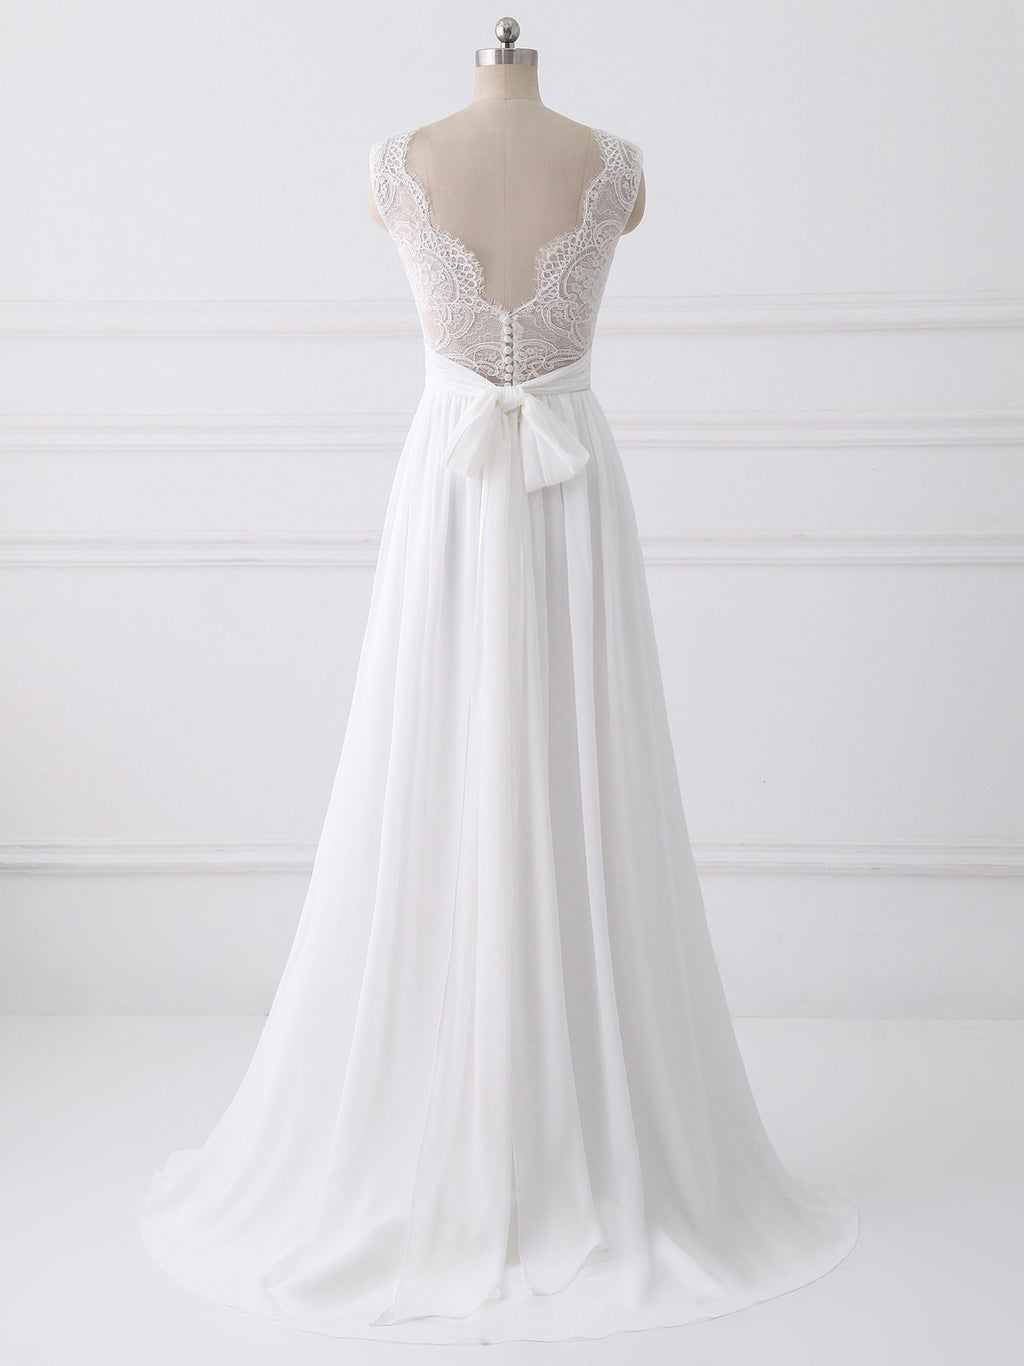 BohoProm Wedding Dresses A-line V-neck Sweep Train Chiffon Lace Wedding Dresses With Bows SWD035